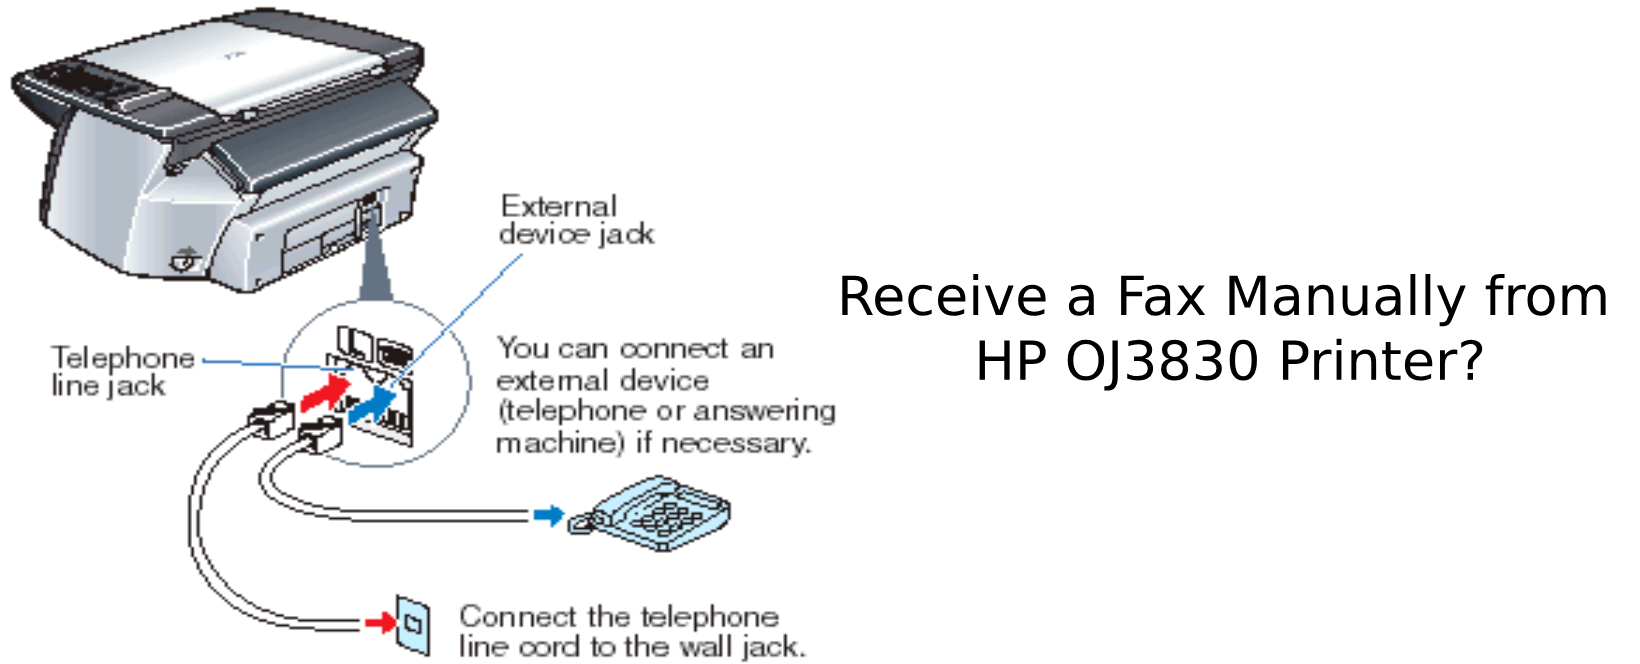 Receive-a-Fax-Manually-from-HP-OJ3830-Printer?